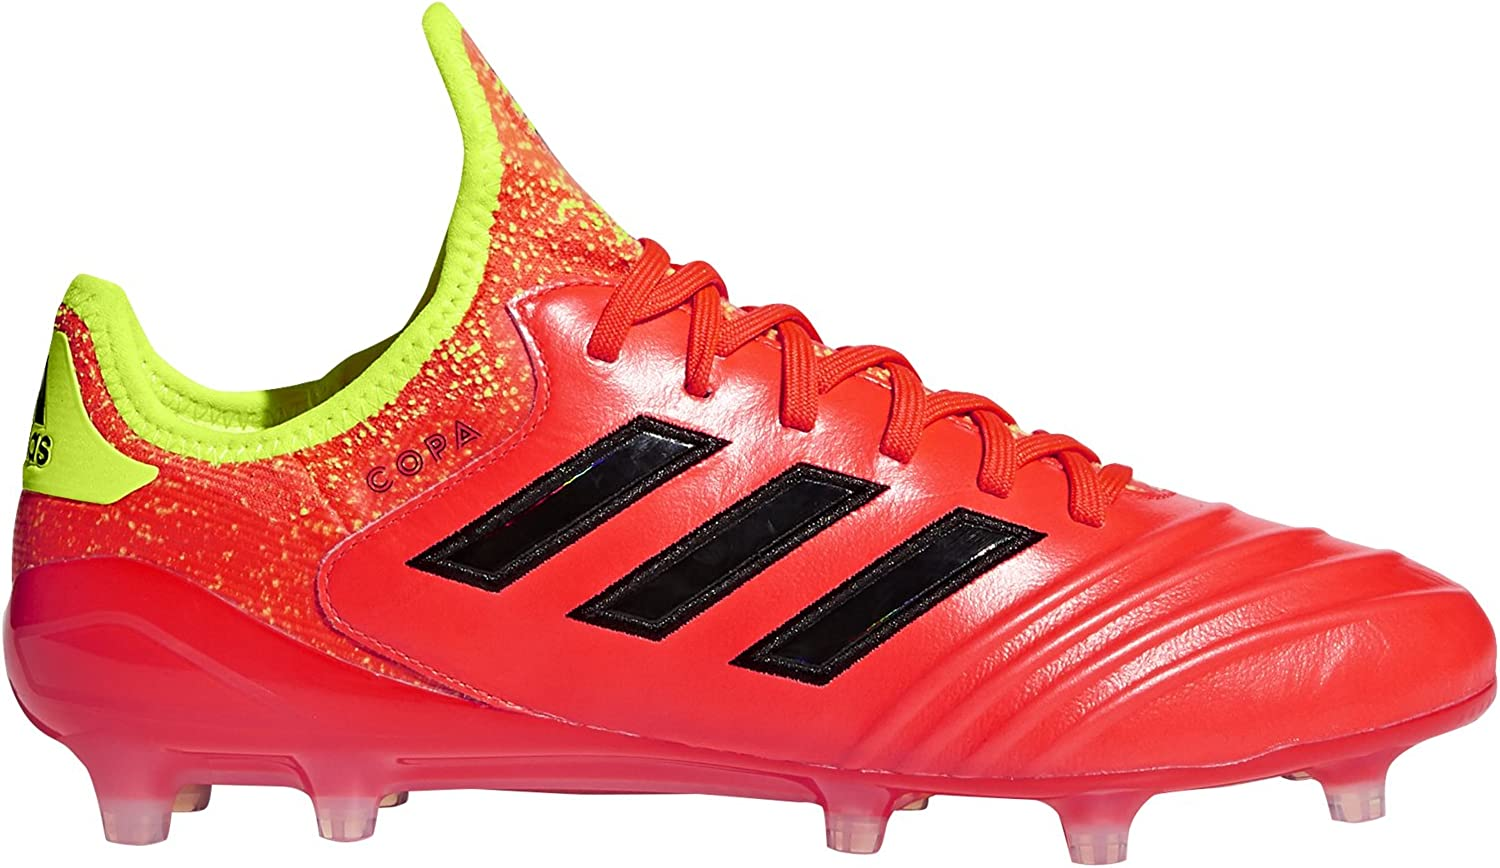 Adidas Copa 18.1 FG Cleat - Men's Soccer 9.5 Solar Red Core Black Yellow